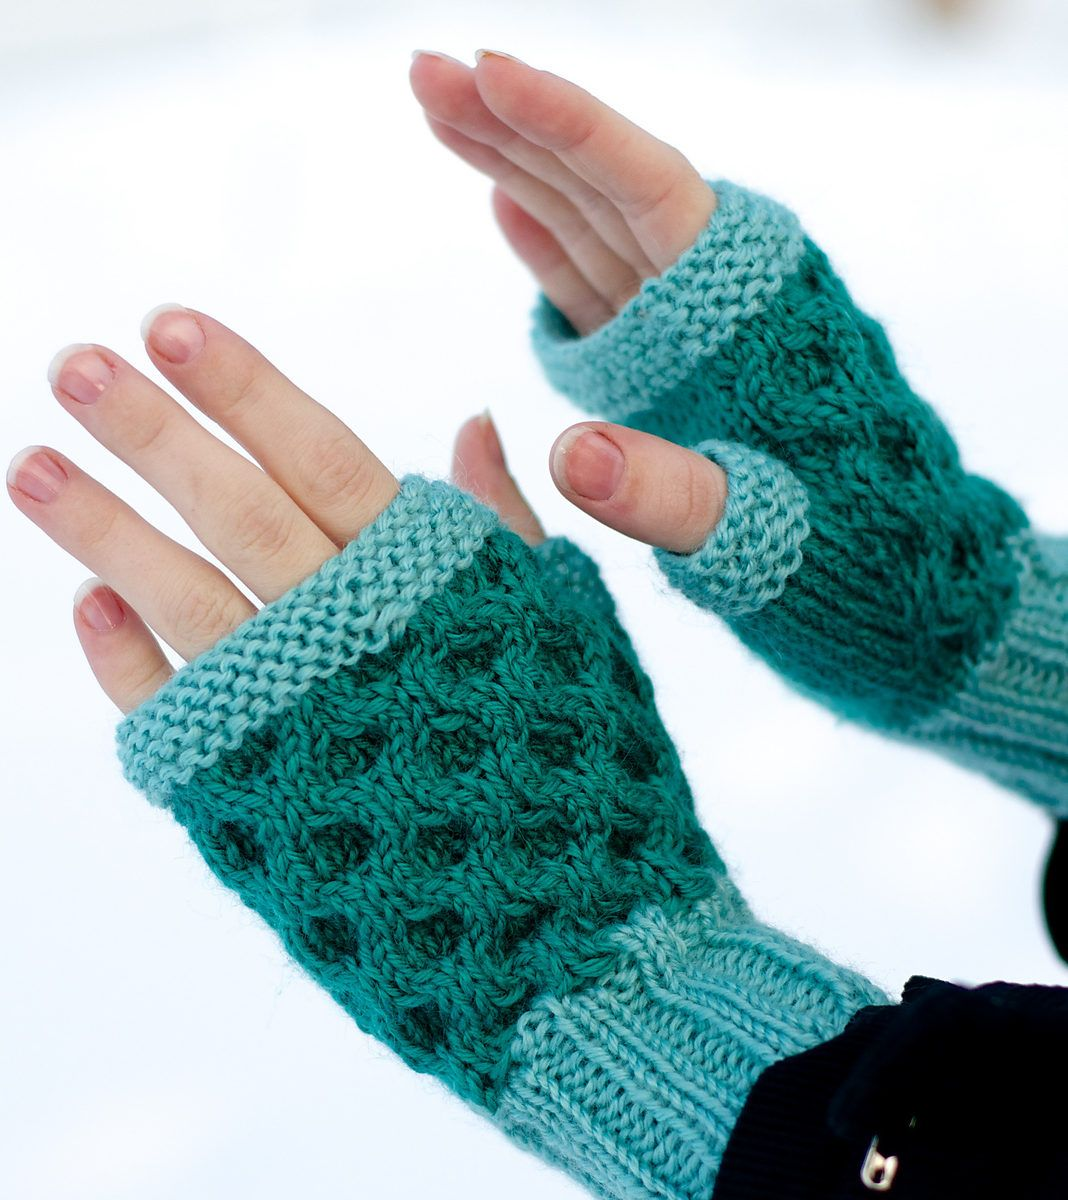 Fingerless mitts and gloves knitting patterns honeycombs knit fingerless mitts and gloves knitting patterns bankloansurffo Choice Image